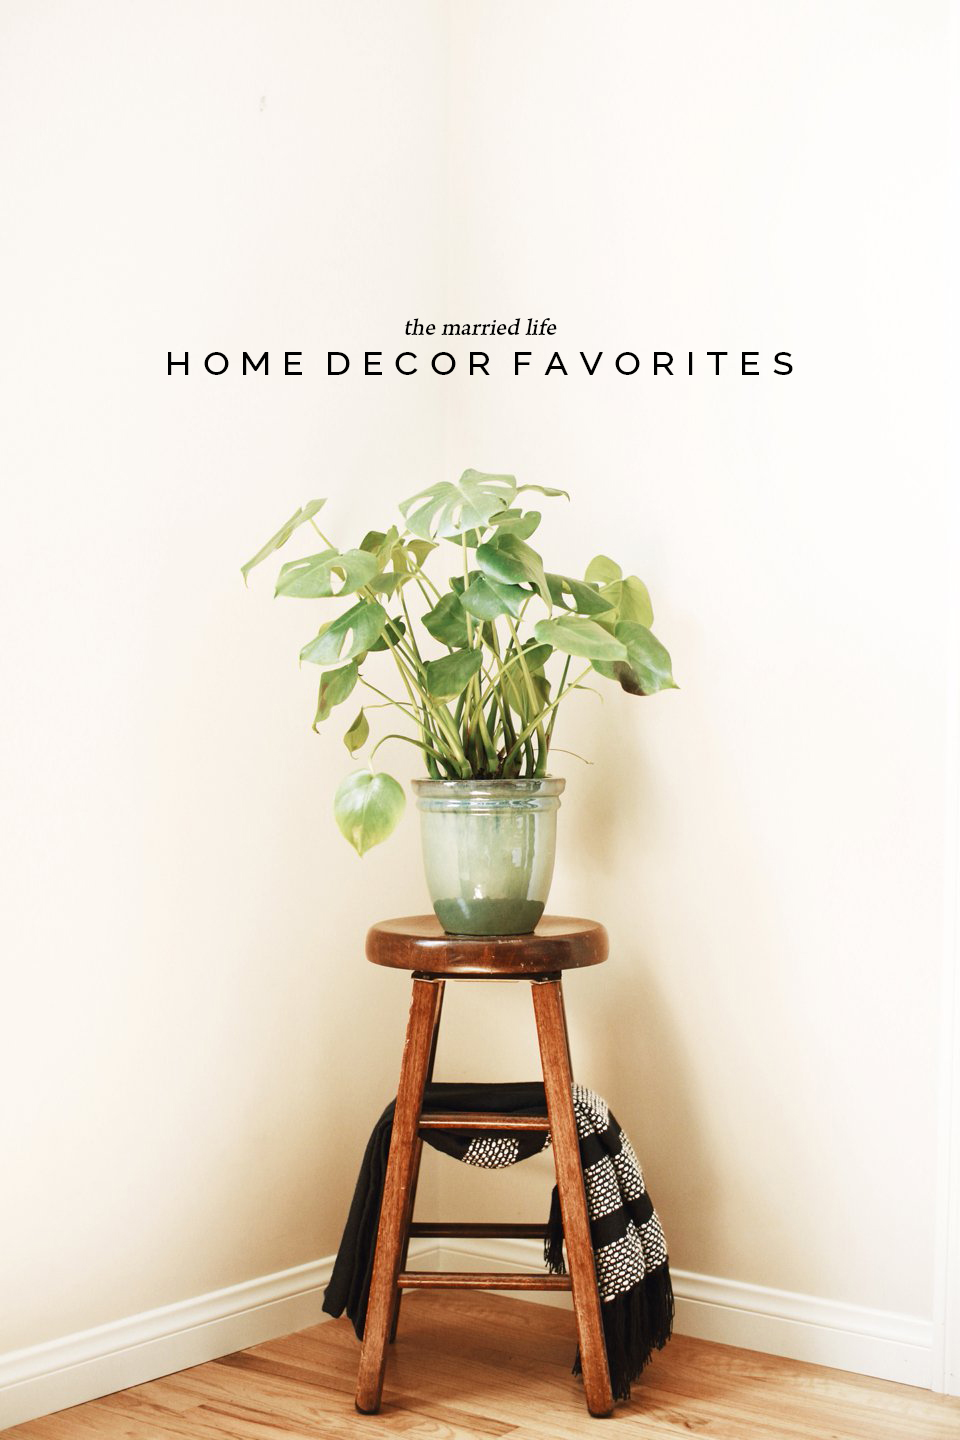 Home Decor Favorites | www.plumandoakphoto.com